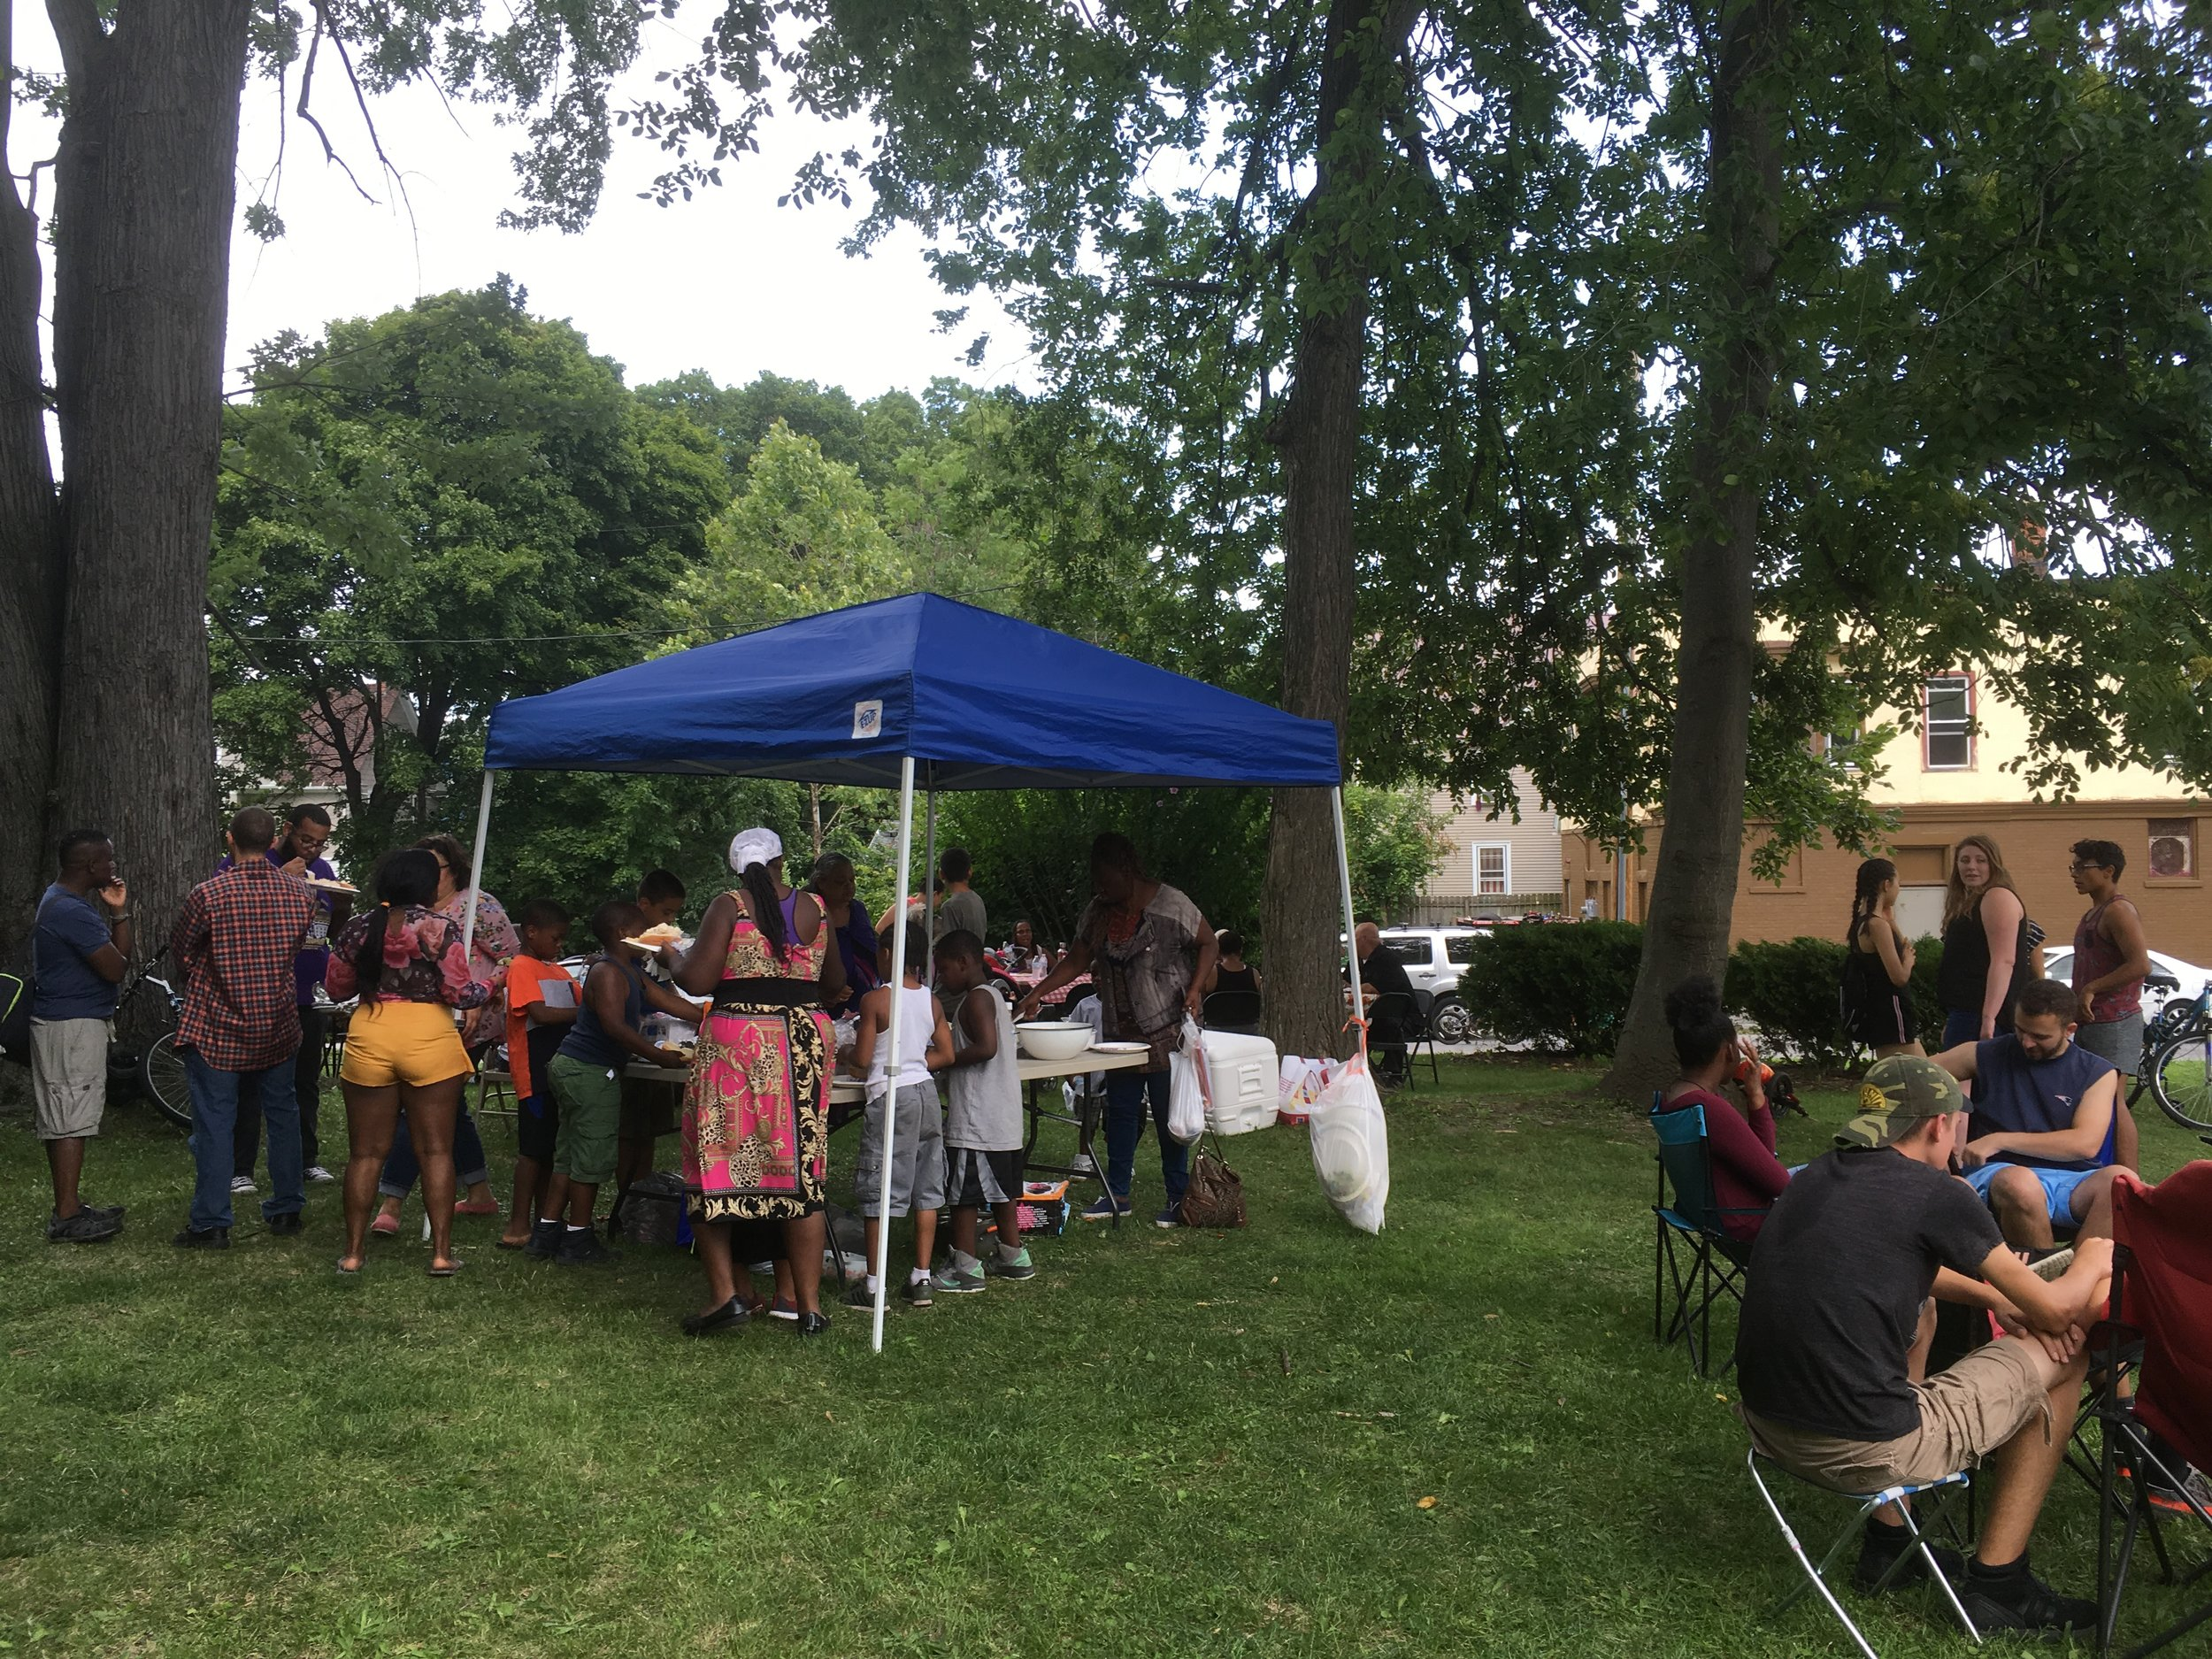 441 Ministries/New City Fellowship Picnic at 441's Community Garden August 2018